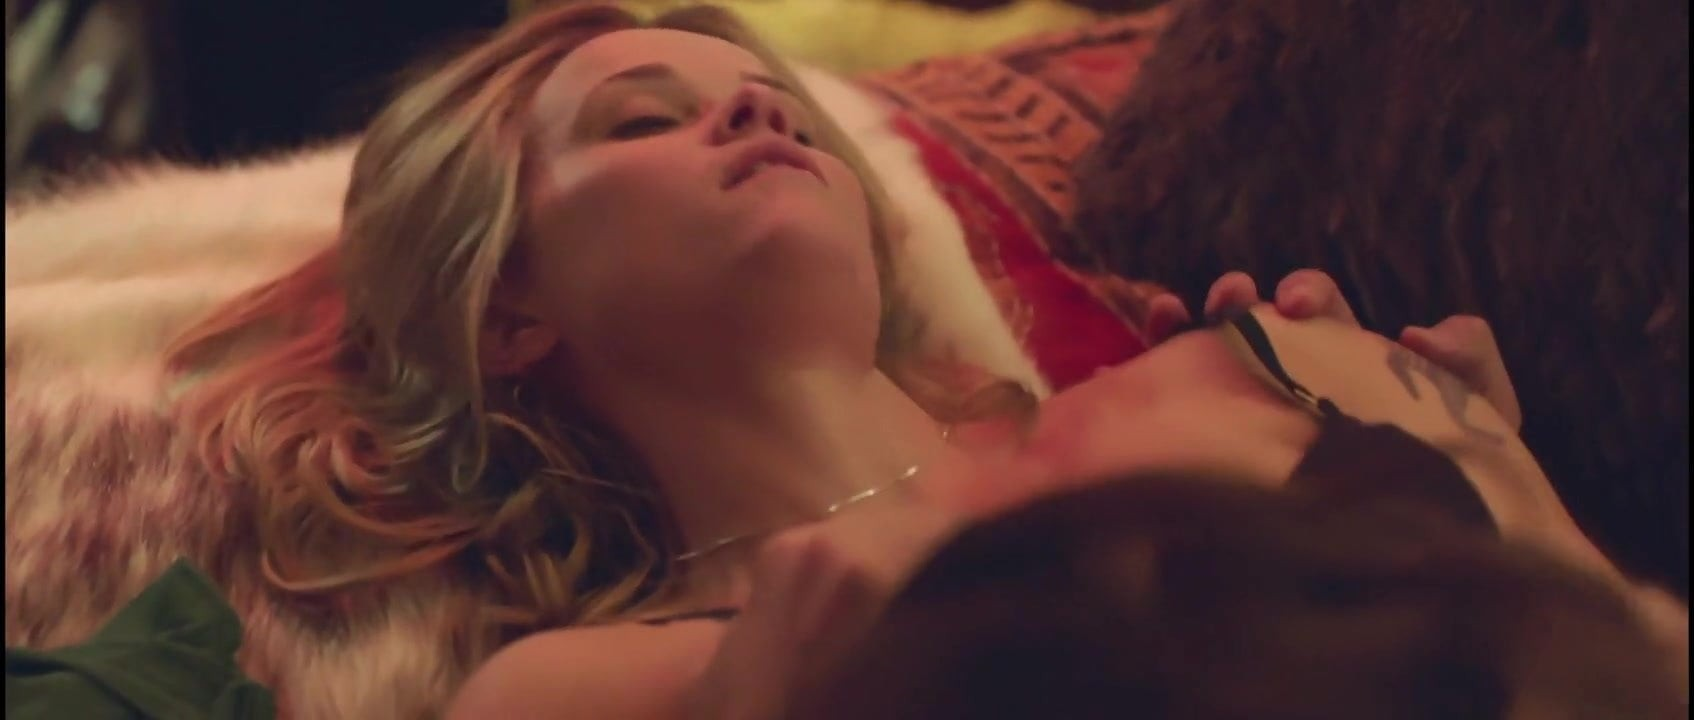 Naked reese witherspoon in wild ancensored